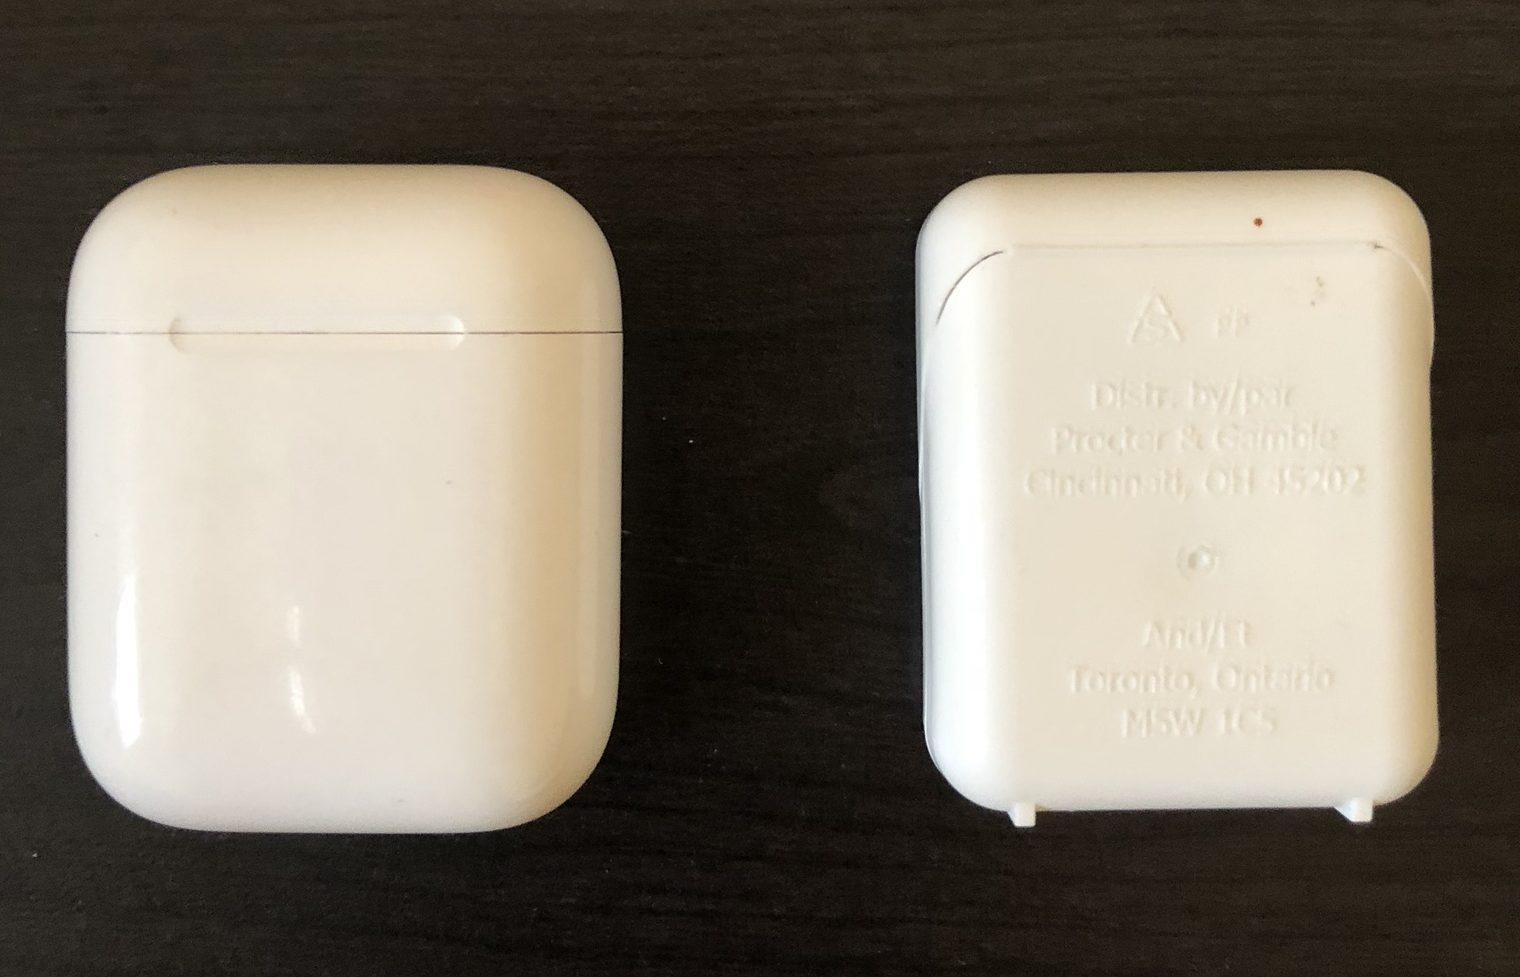 AirPods vs. dental floss